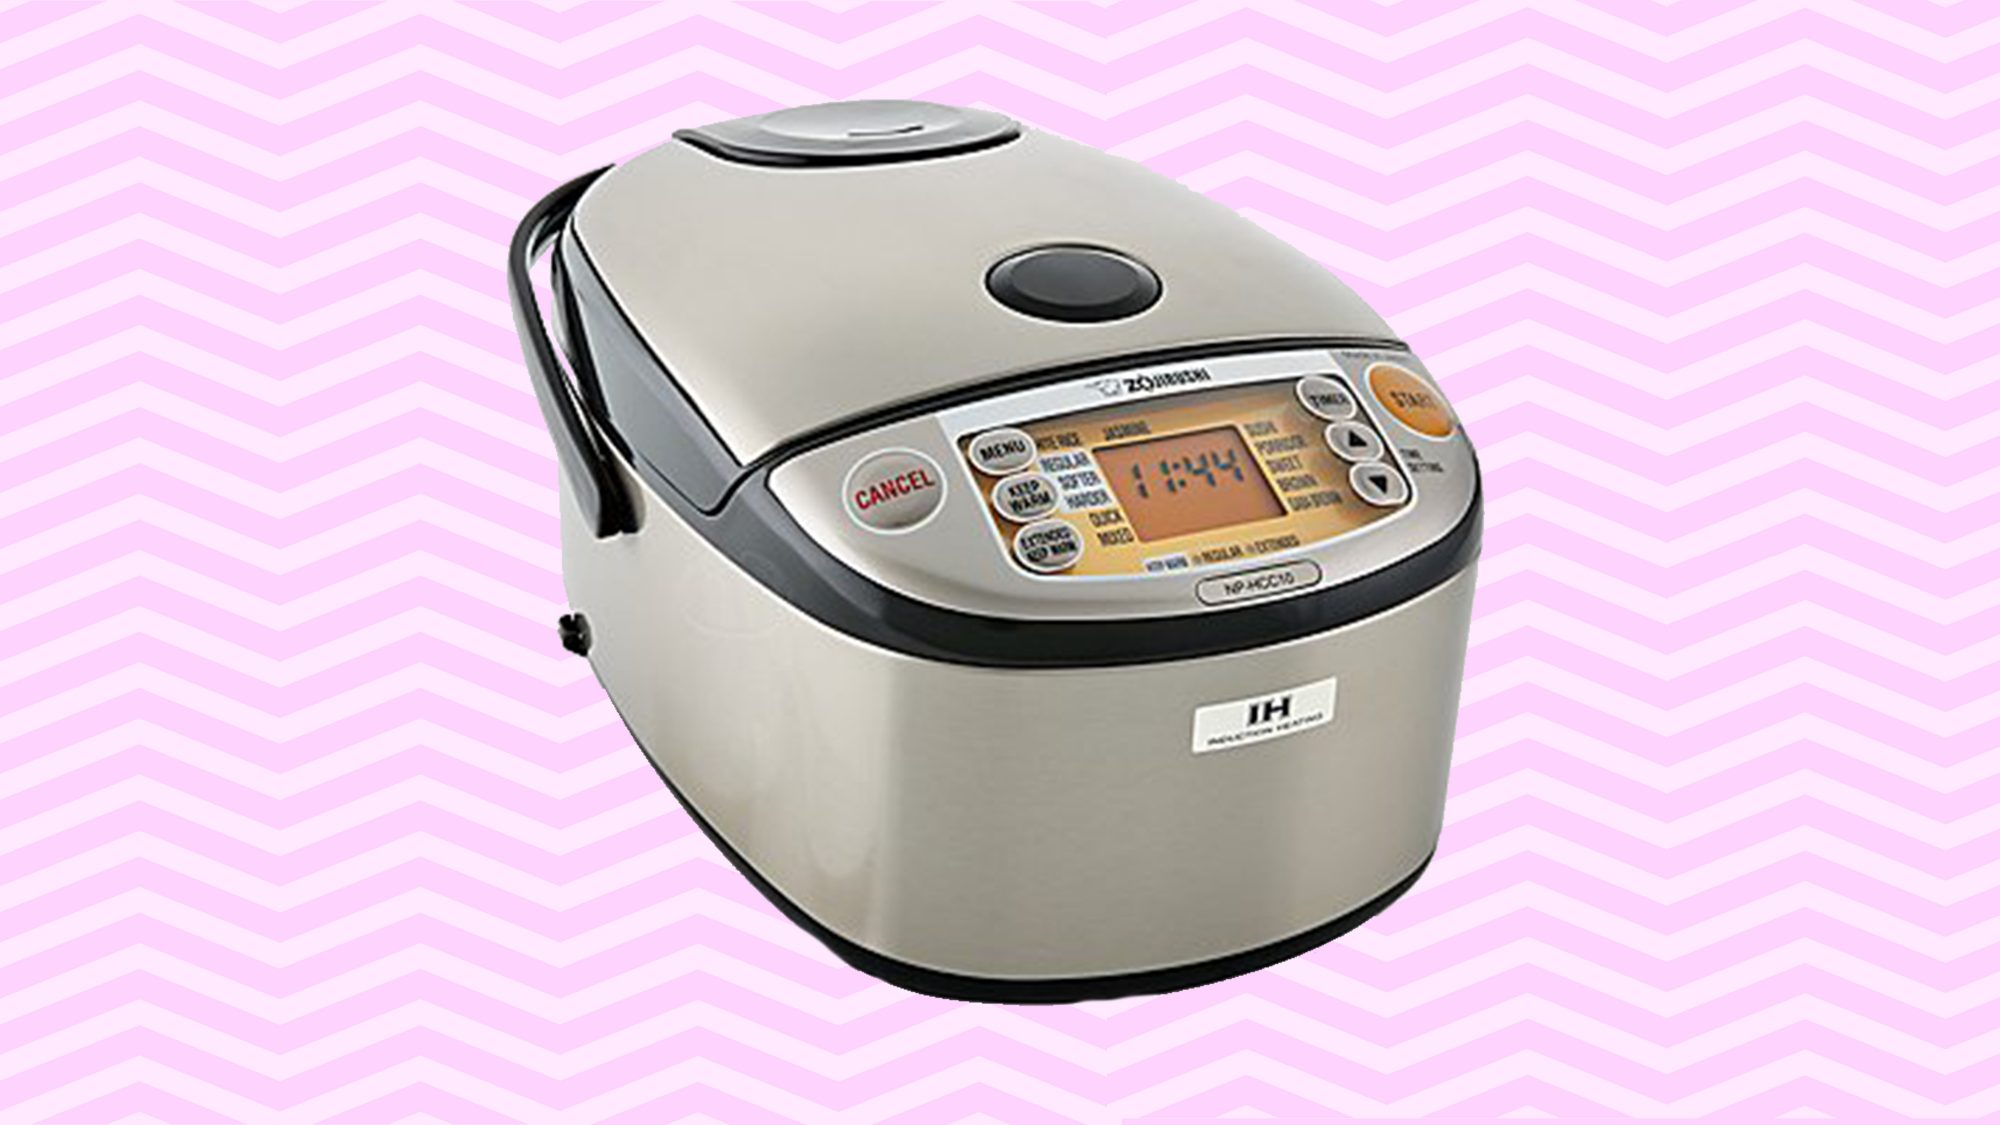 Zojirushi Induction Heating 5.5-Cup Rice Cooker Tout